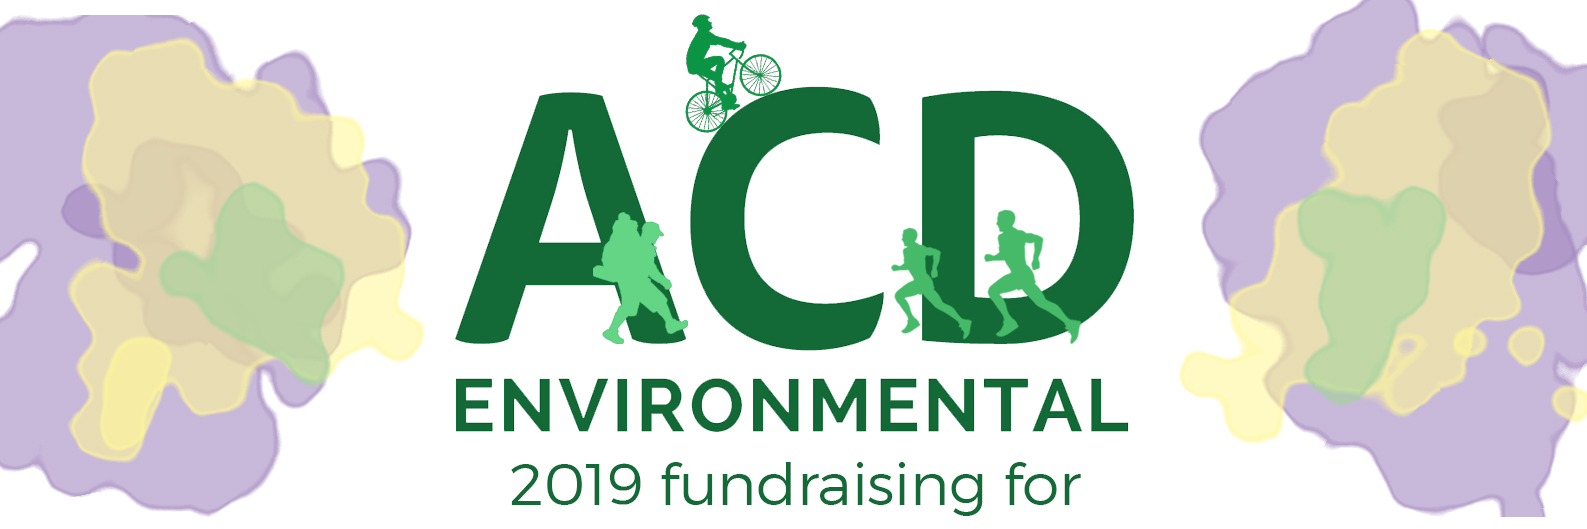 acd charity 2019 banner